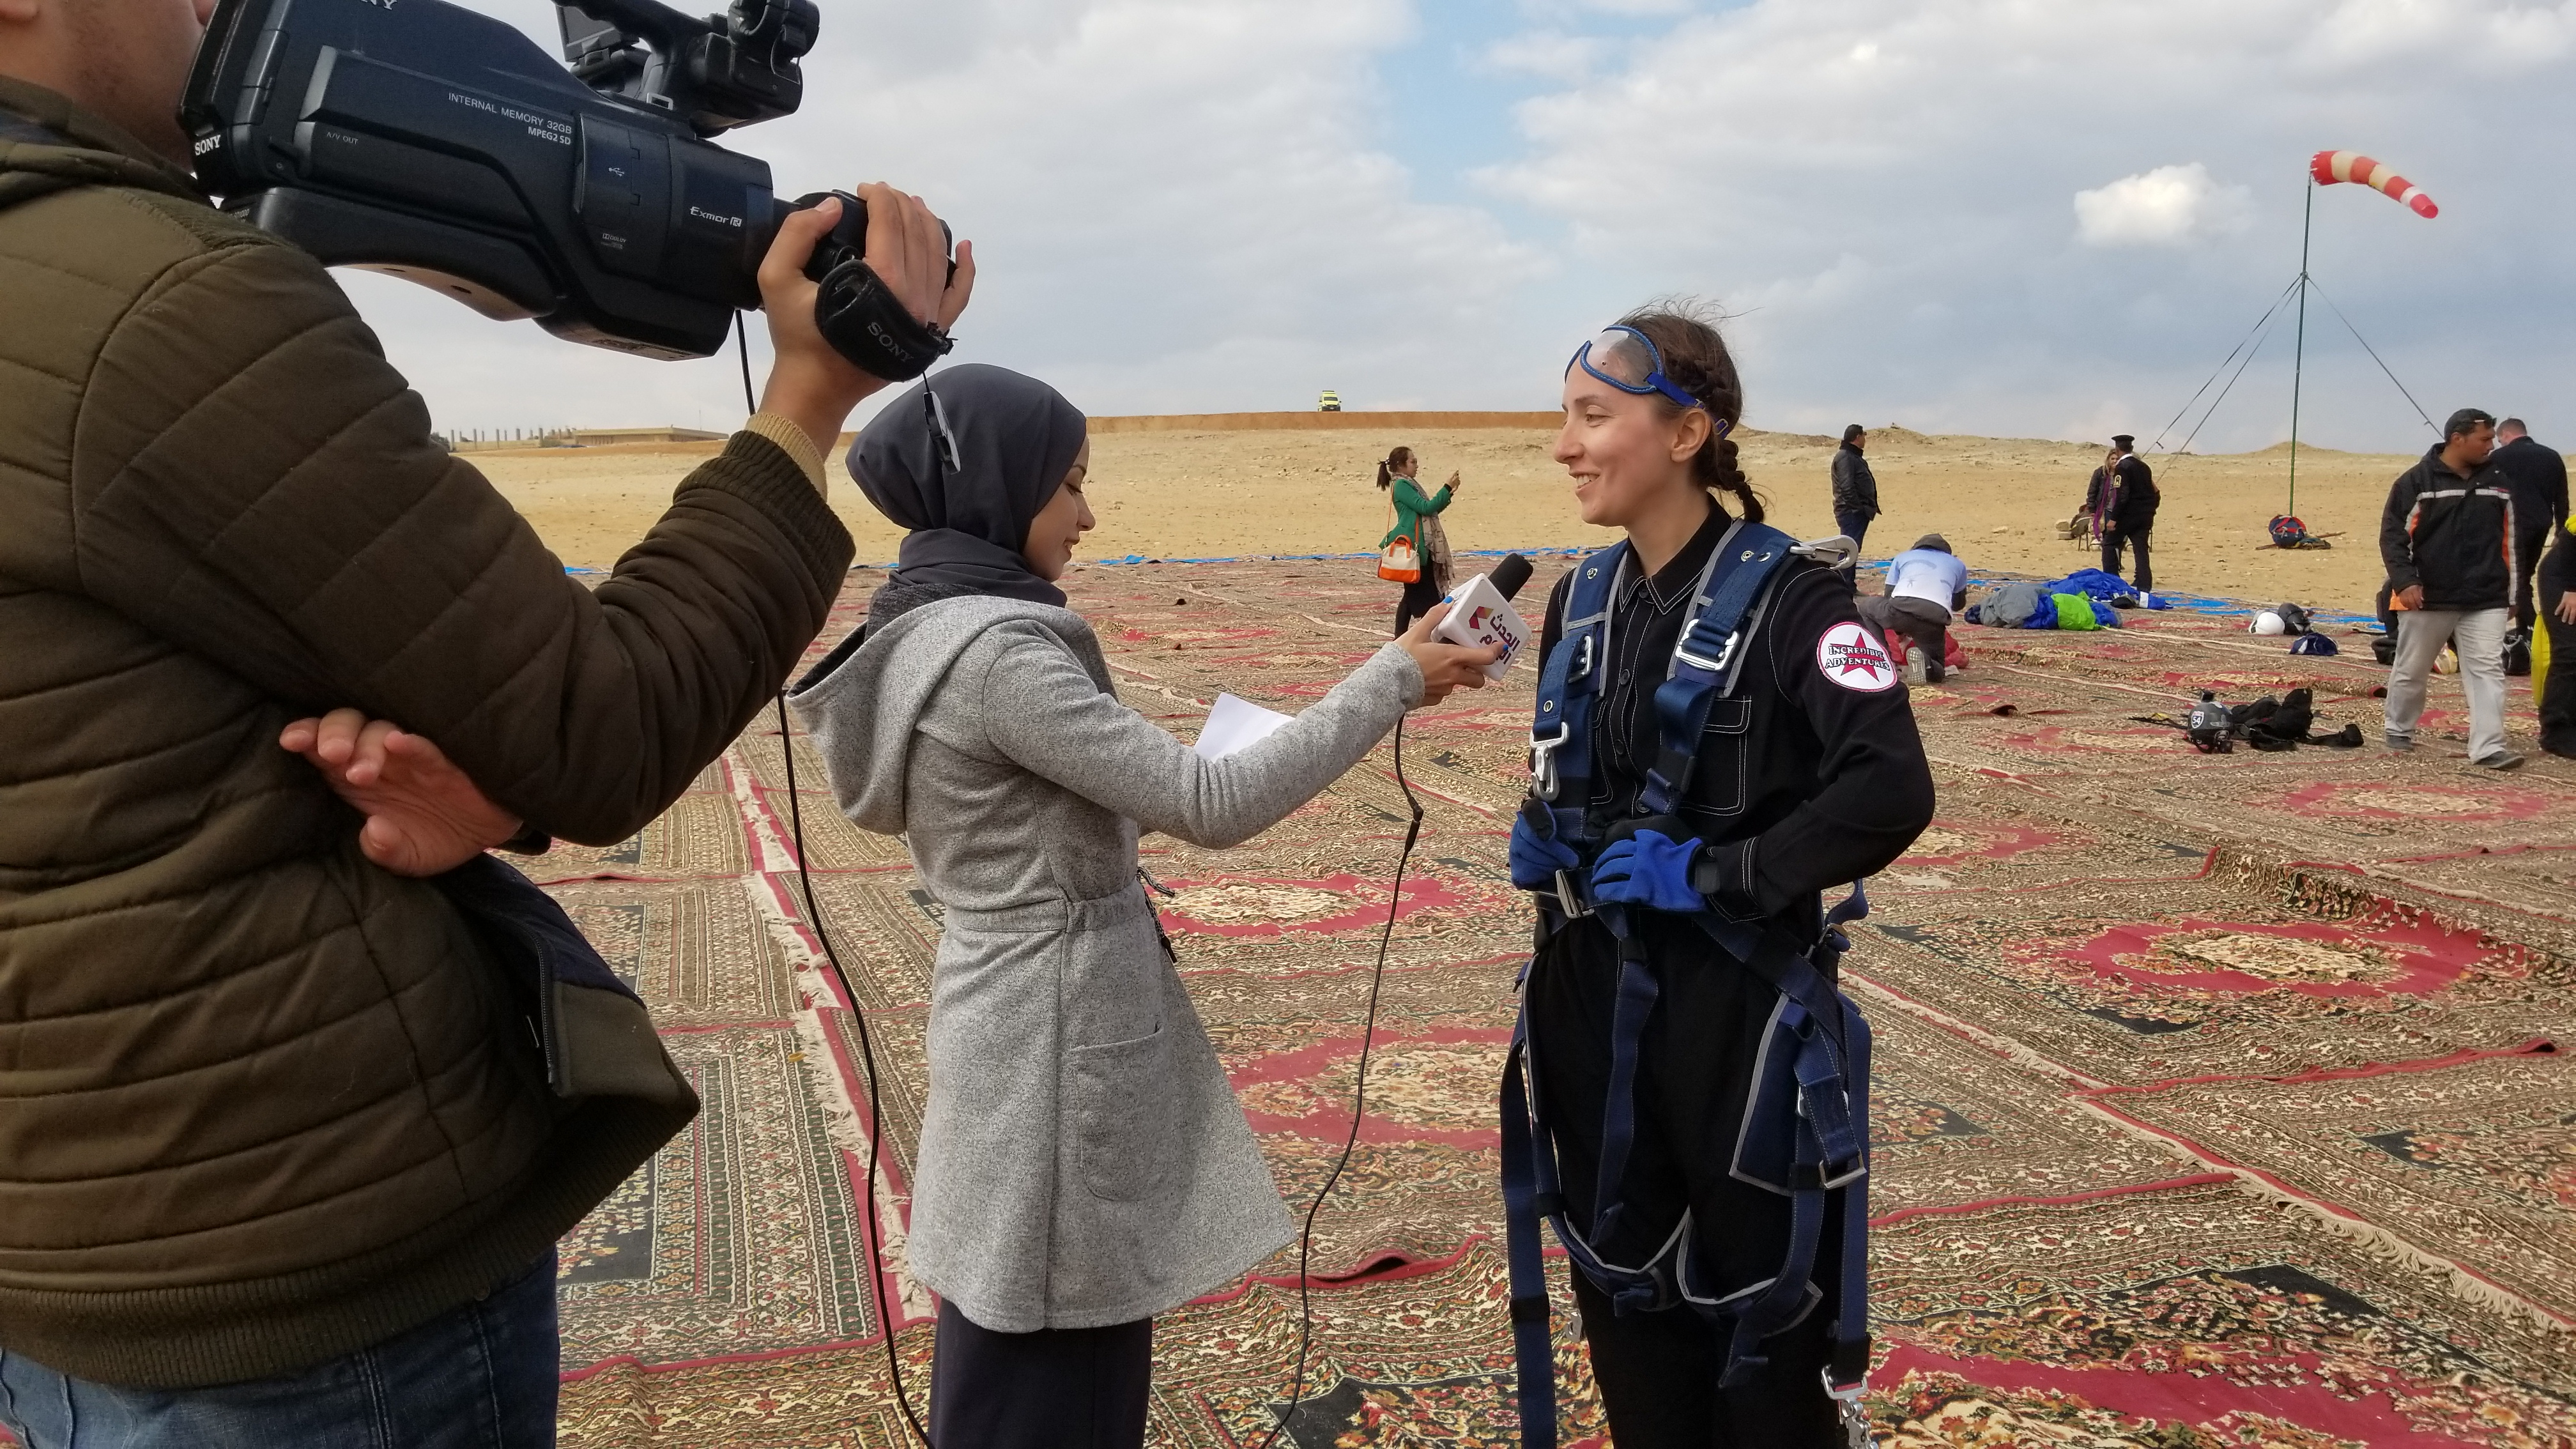 Rebecca Claxton, first America woman to skydive over the pyramids in Egypt